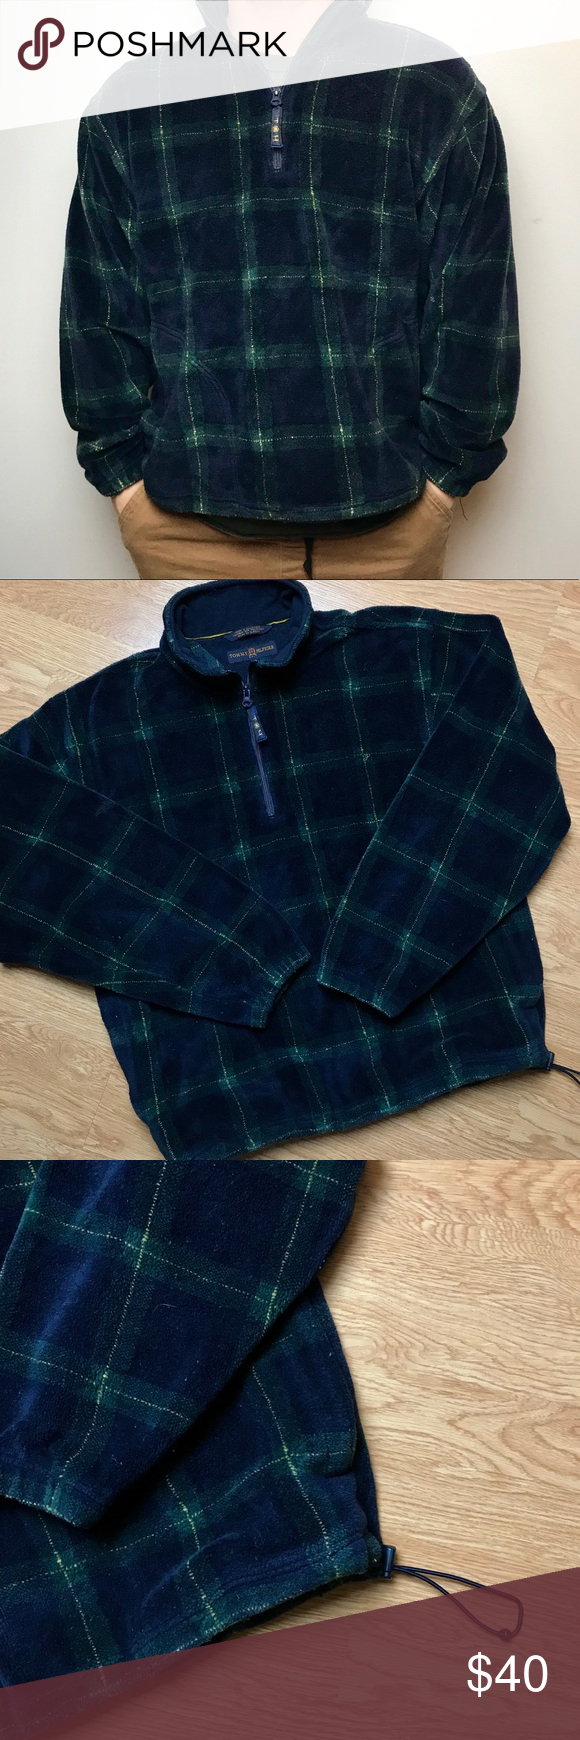 Vintage tommy hilfiger checkered golf fleece m tommy hilfiger